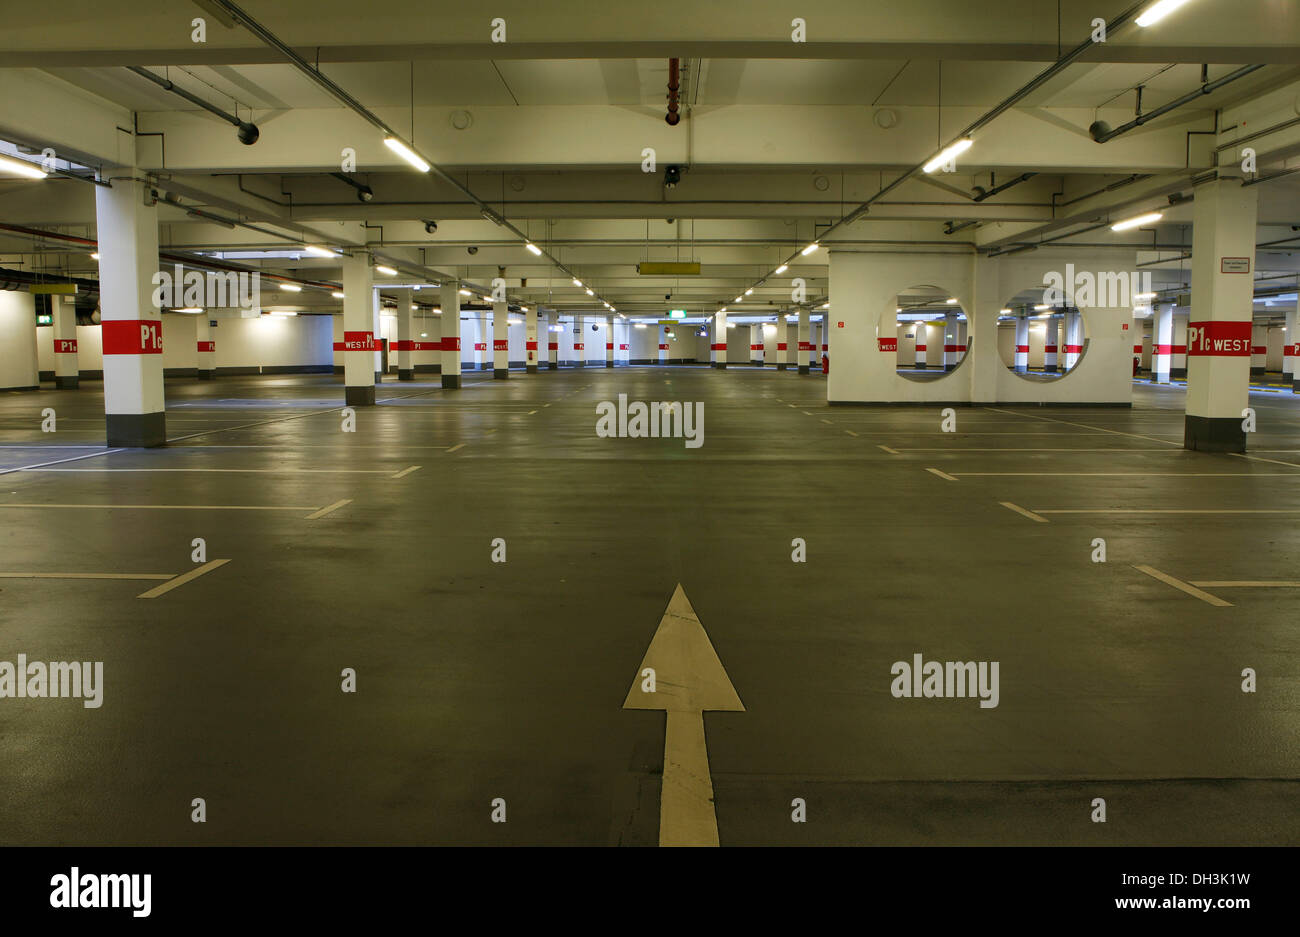 empty parking lots stock photos empty parking lots stock images alamy. Black Bedroom Furniture Sets. Home Design Ideas